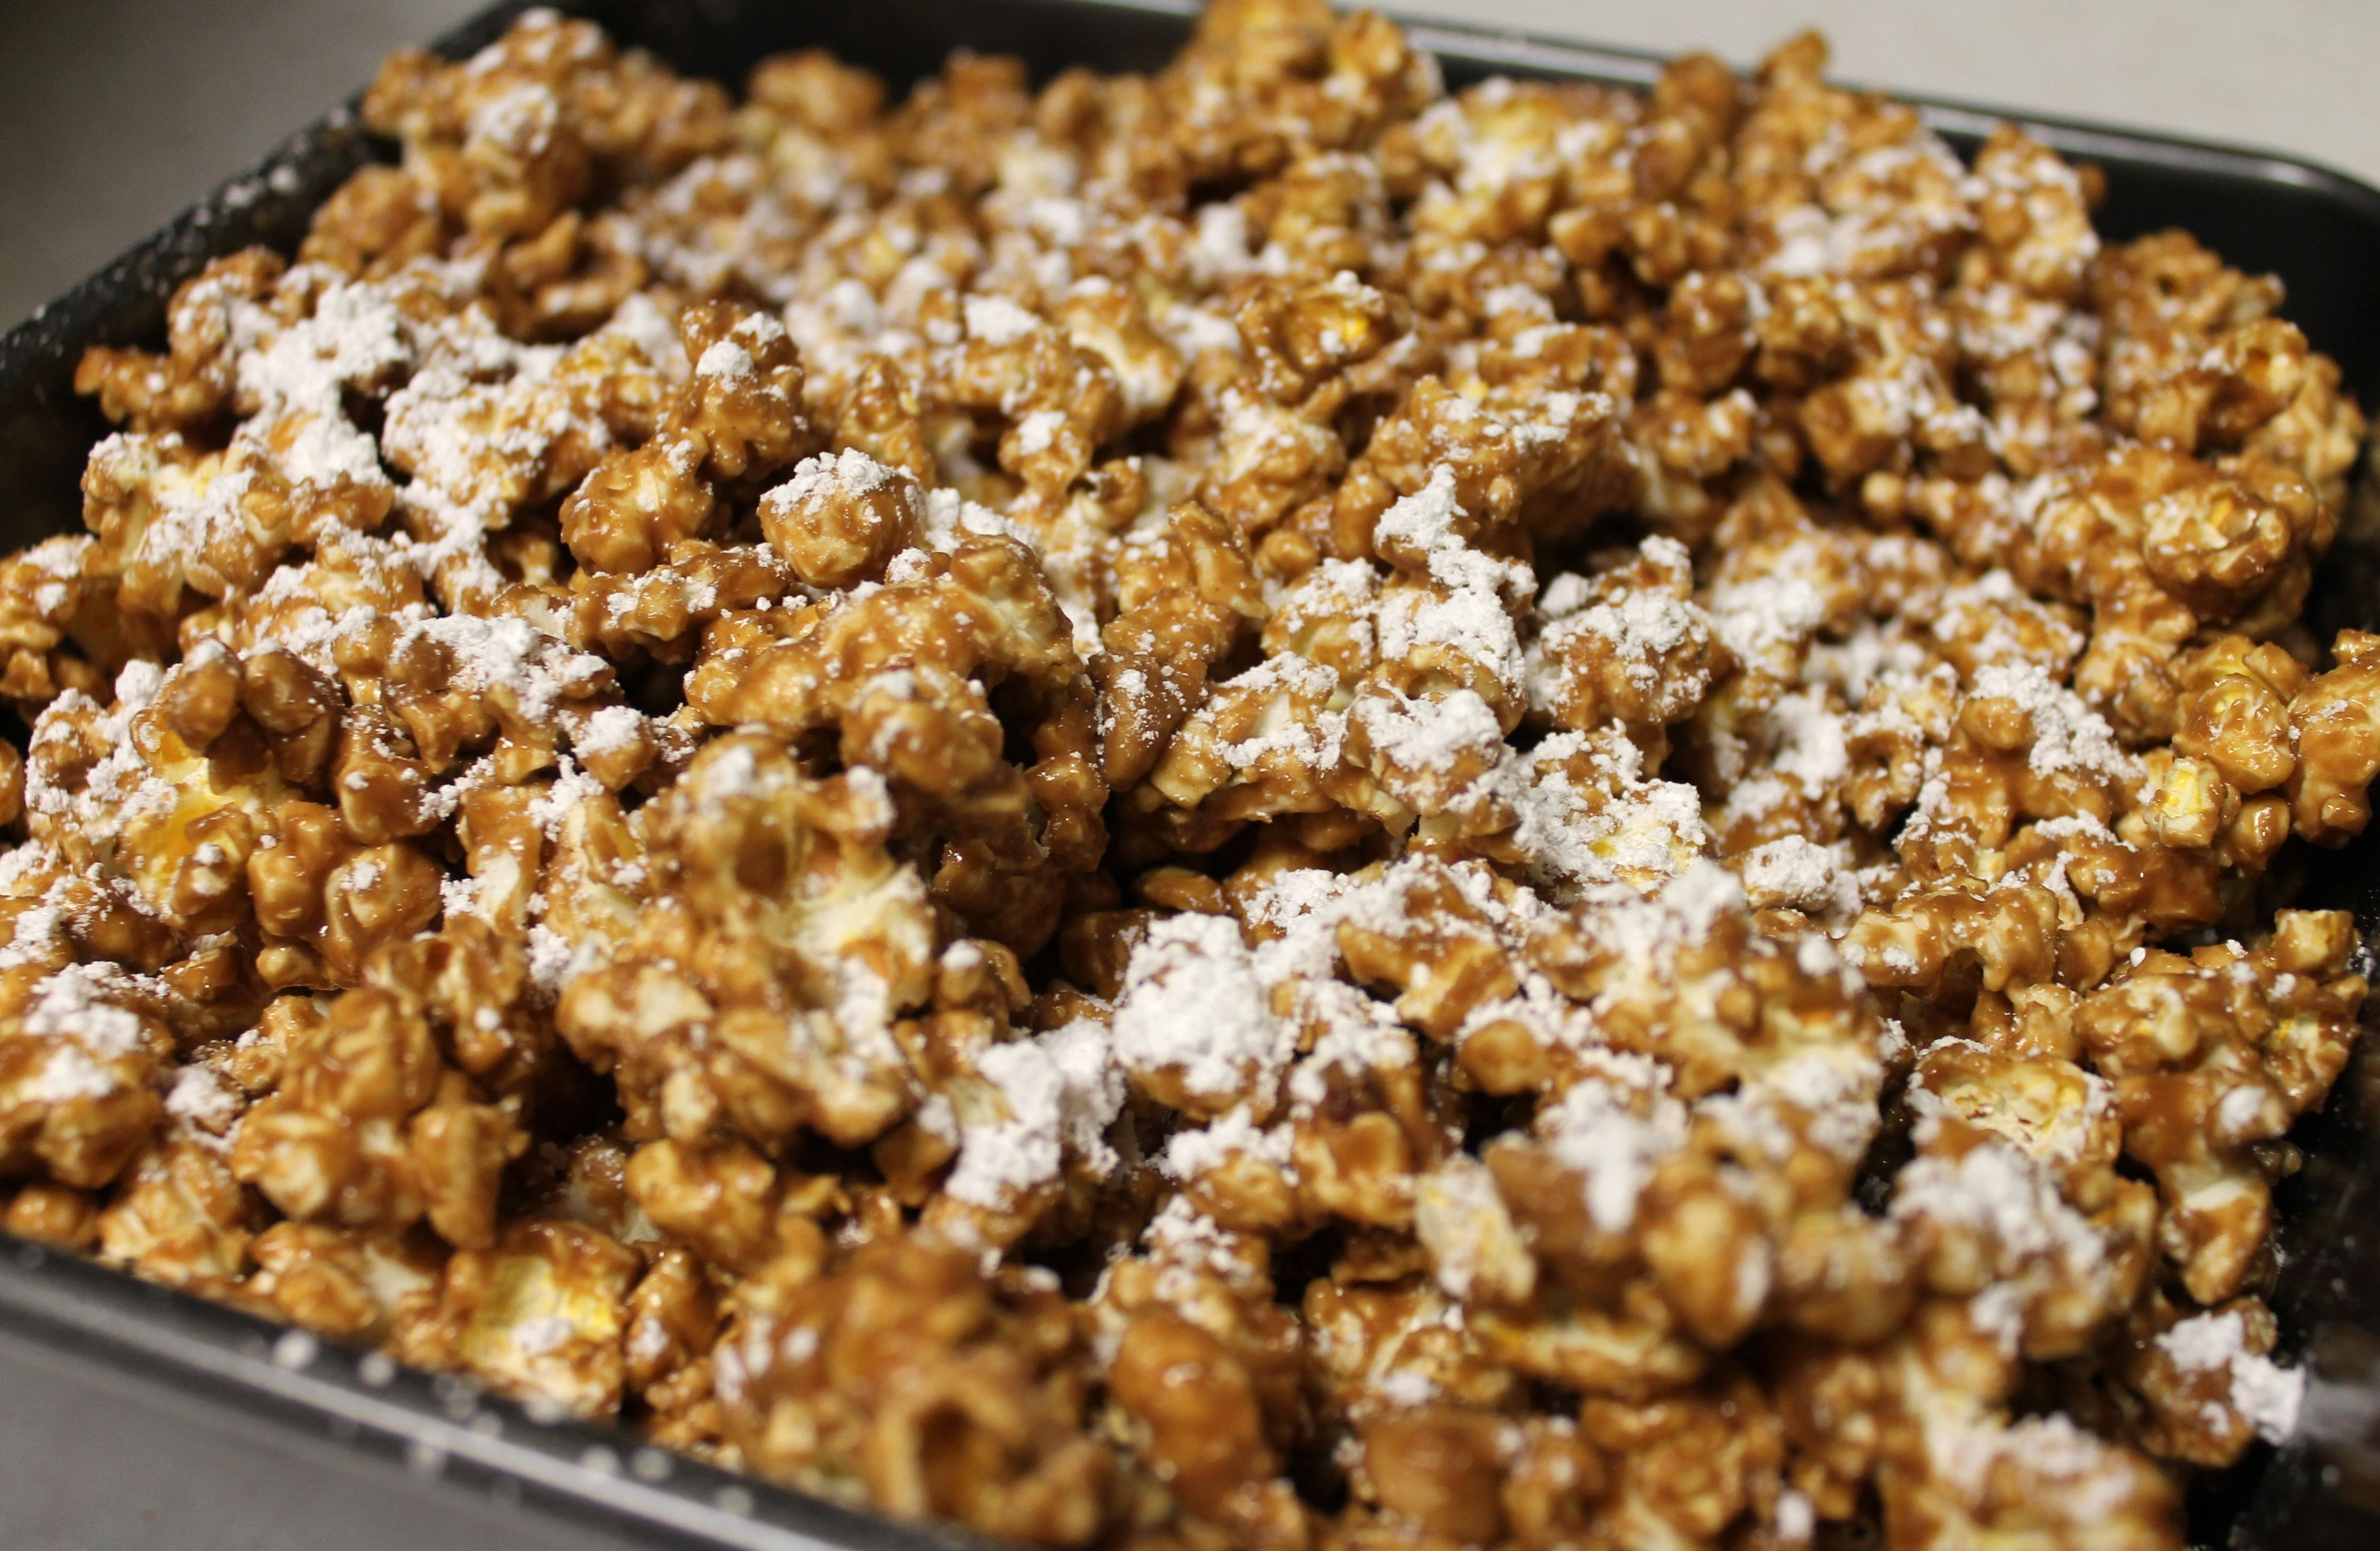 YUM!!!!  Reese's Popcorn...  pop a bag of popcorn, melt 1 cup of chocolate, 1/2 cup peanut butter, 1/4 cup butter. add a teaspoon of vanilla. mix into popcorn. place in refrigerator for 30 mins. sprinkle on some powdered sugar